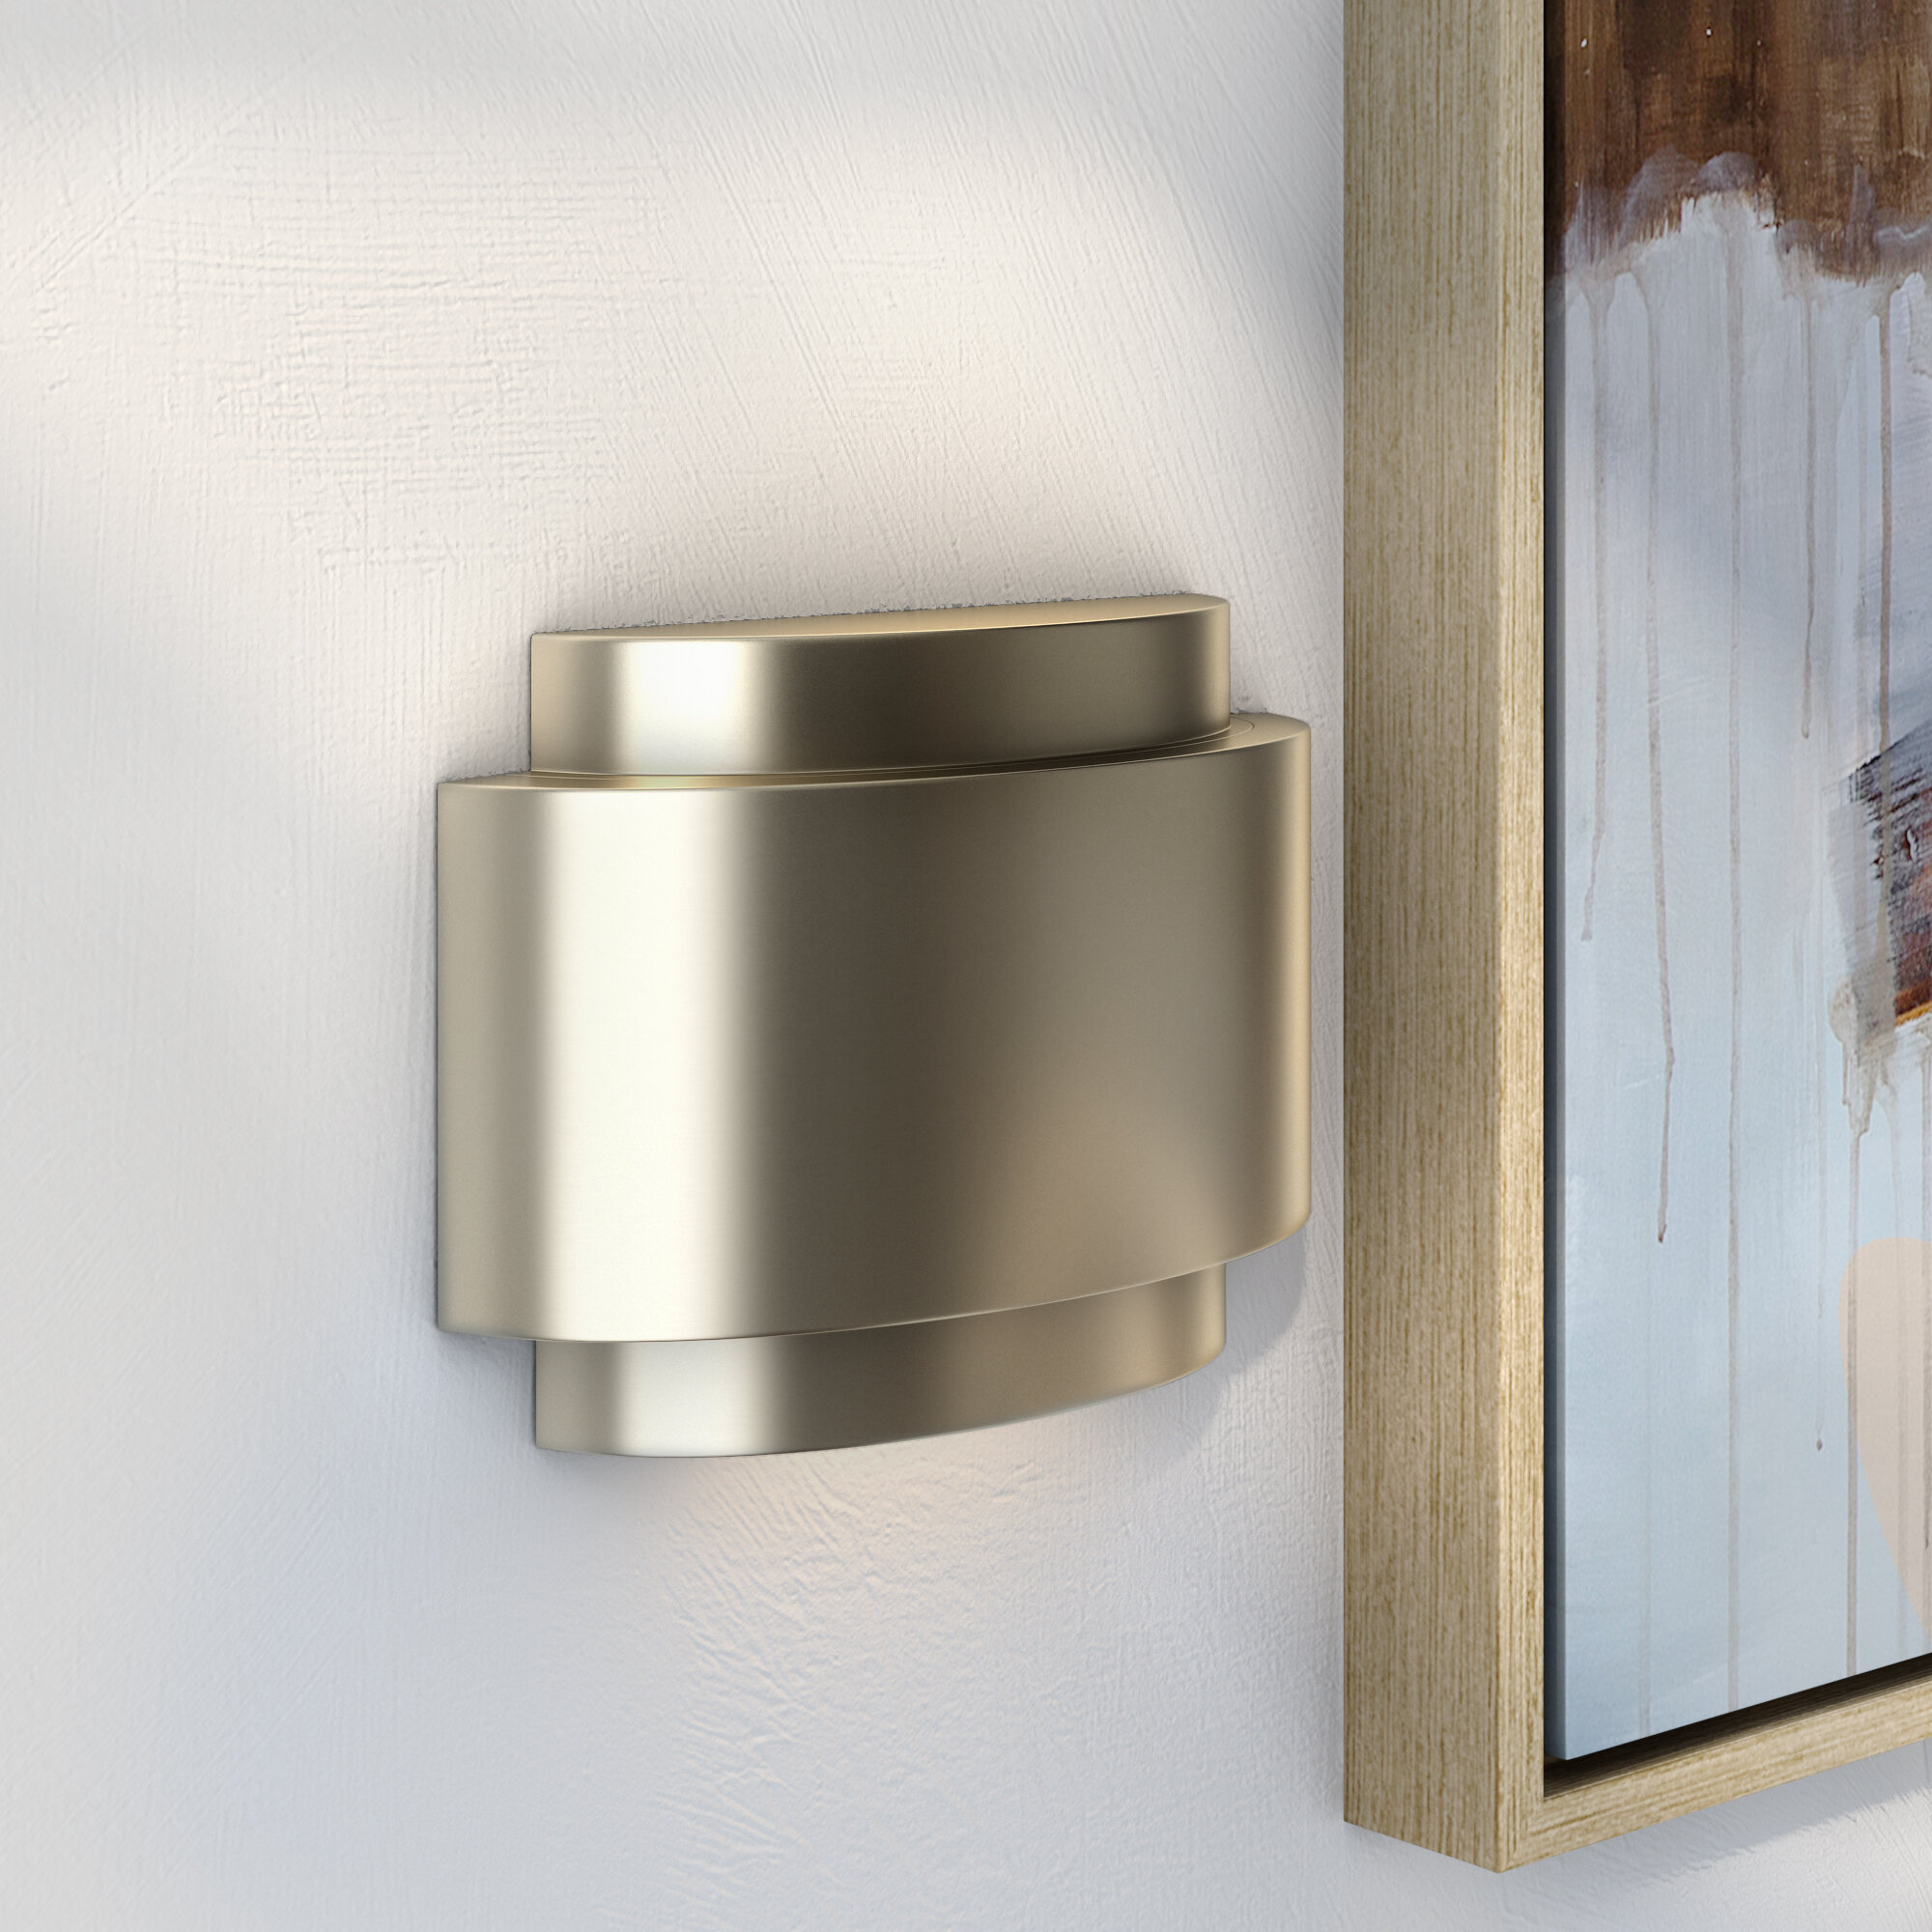 Doorbell Chime Covers Wayfair Electronic Circuits And Design Simple Musical Calling Bell Contemporary Door In Stainless Steel